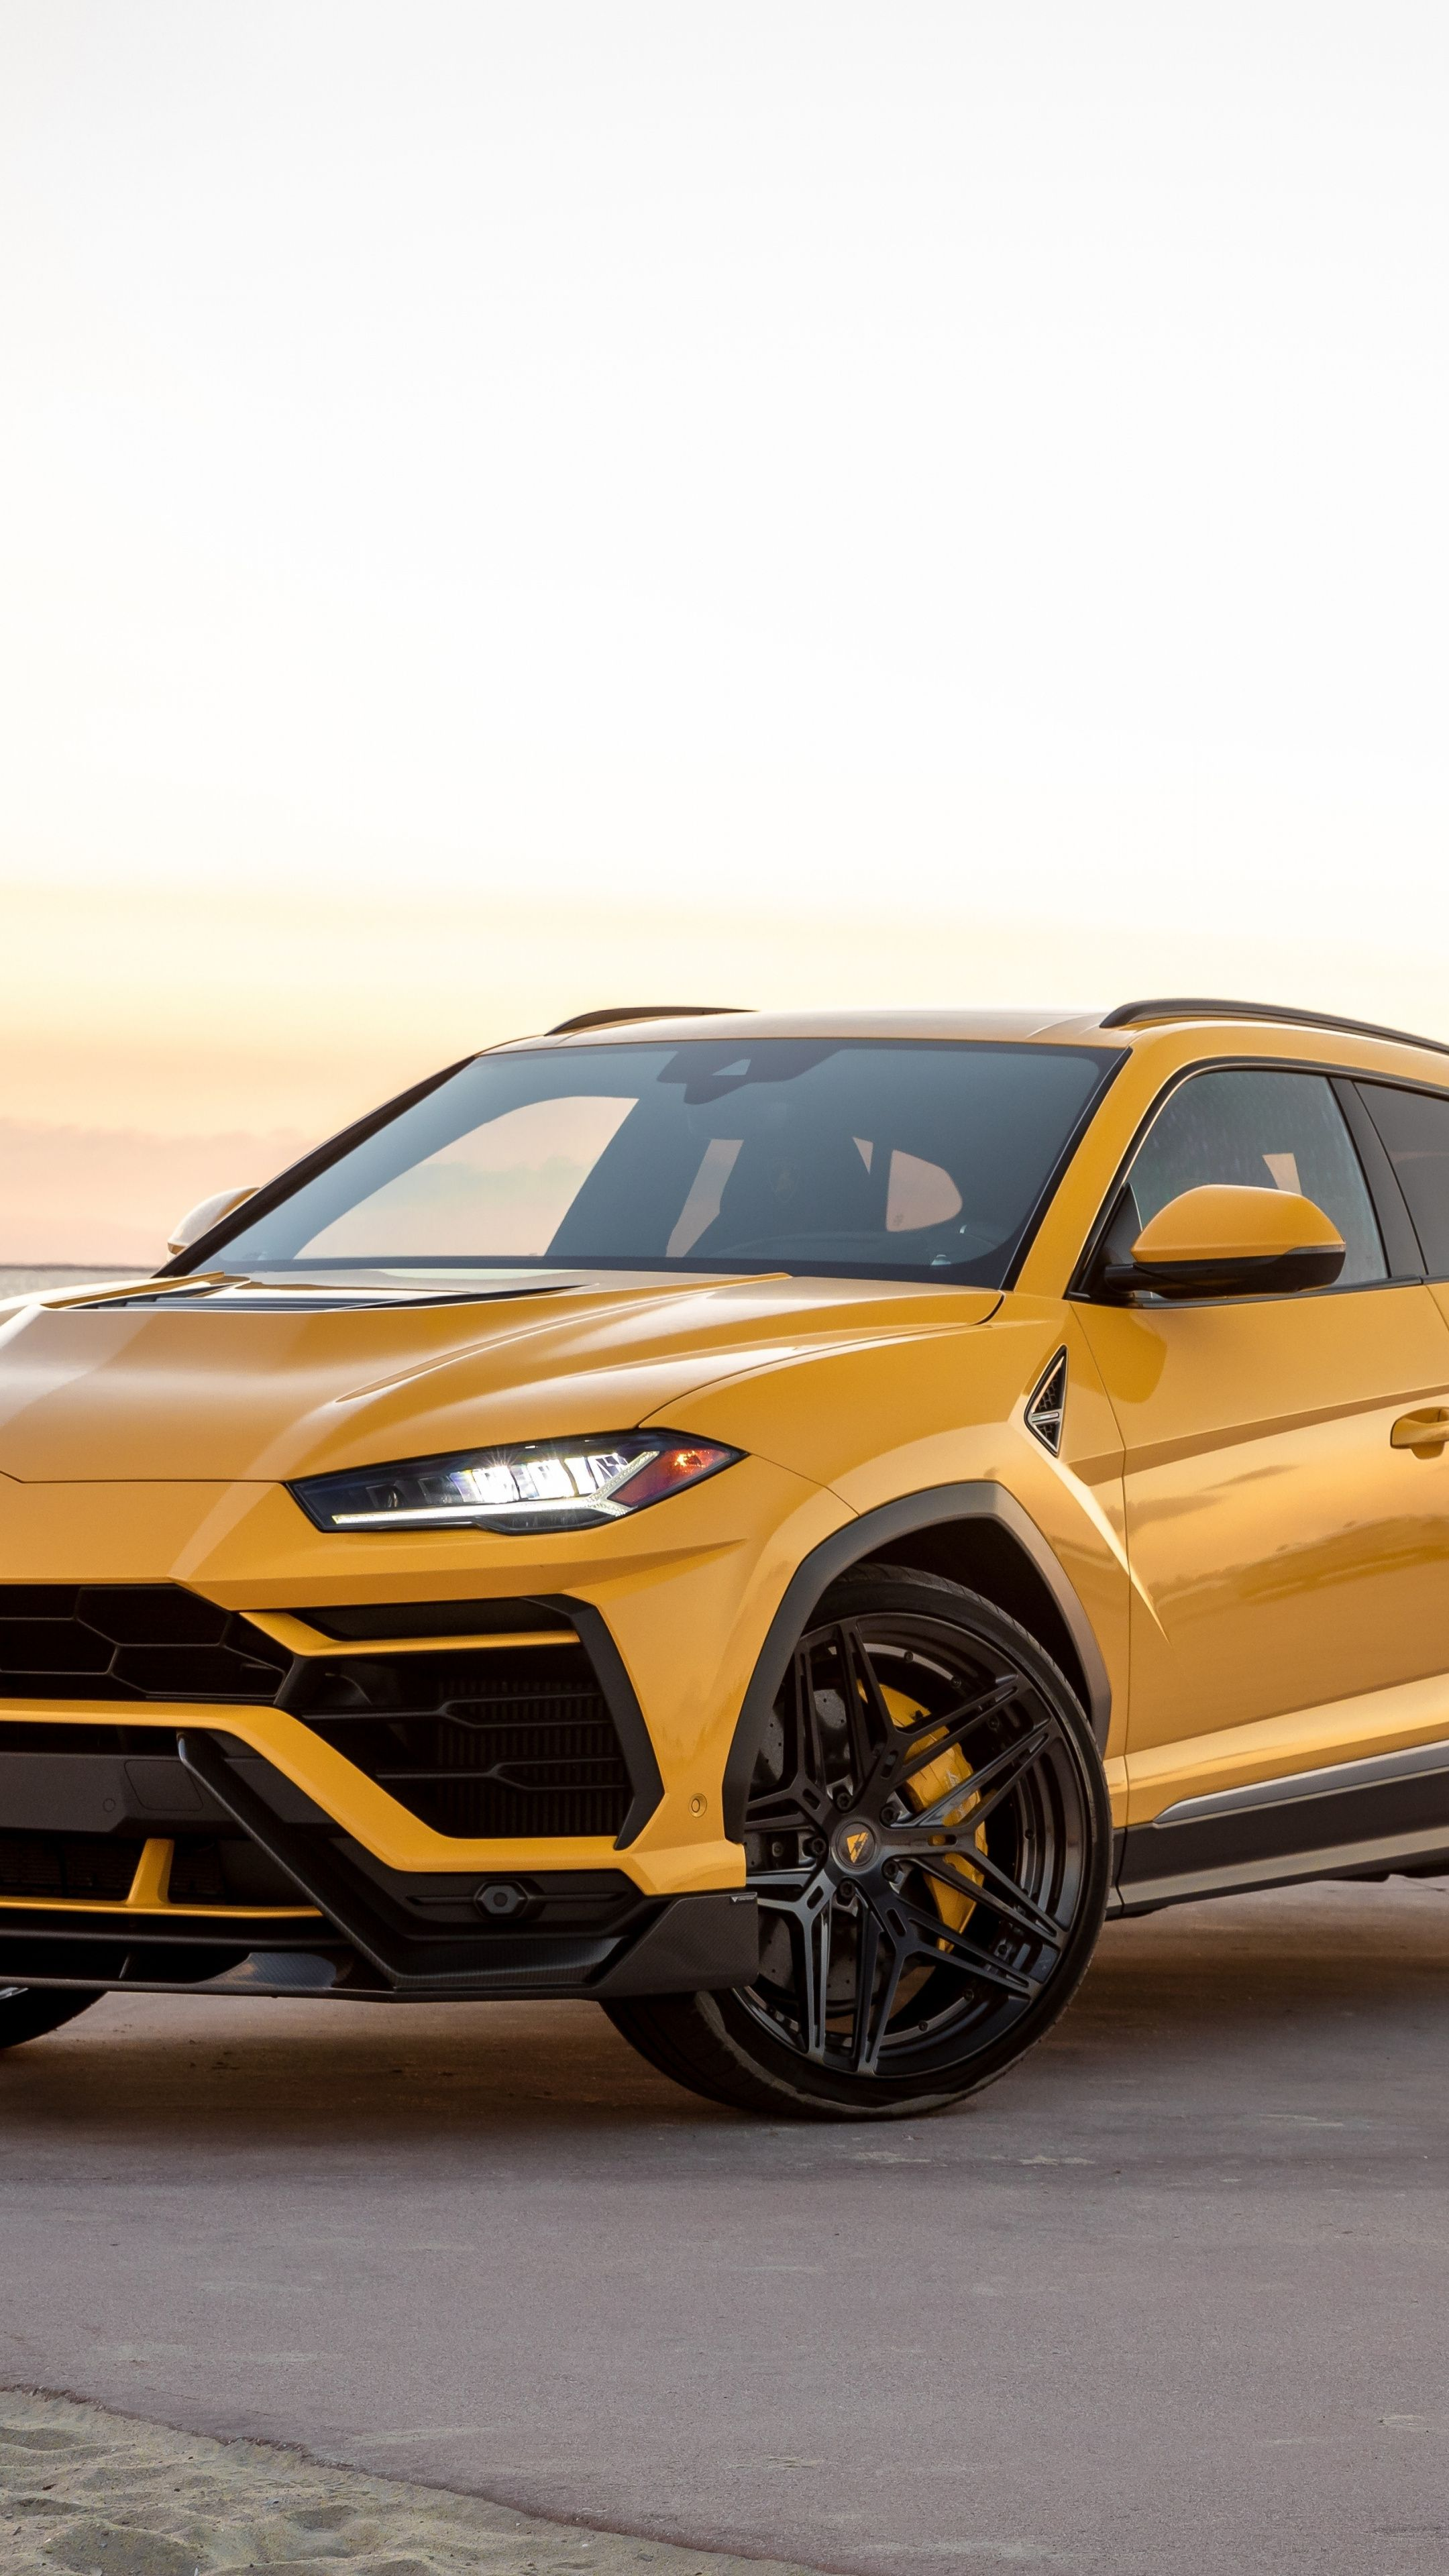 2160x3840 Suv 2020 Lamborghini Urus Wallpaper In 2020